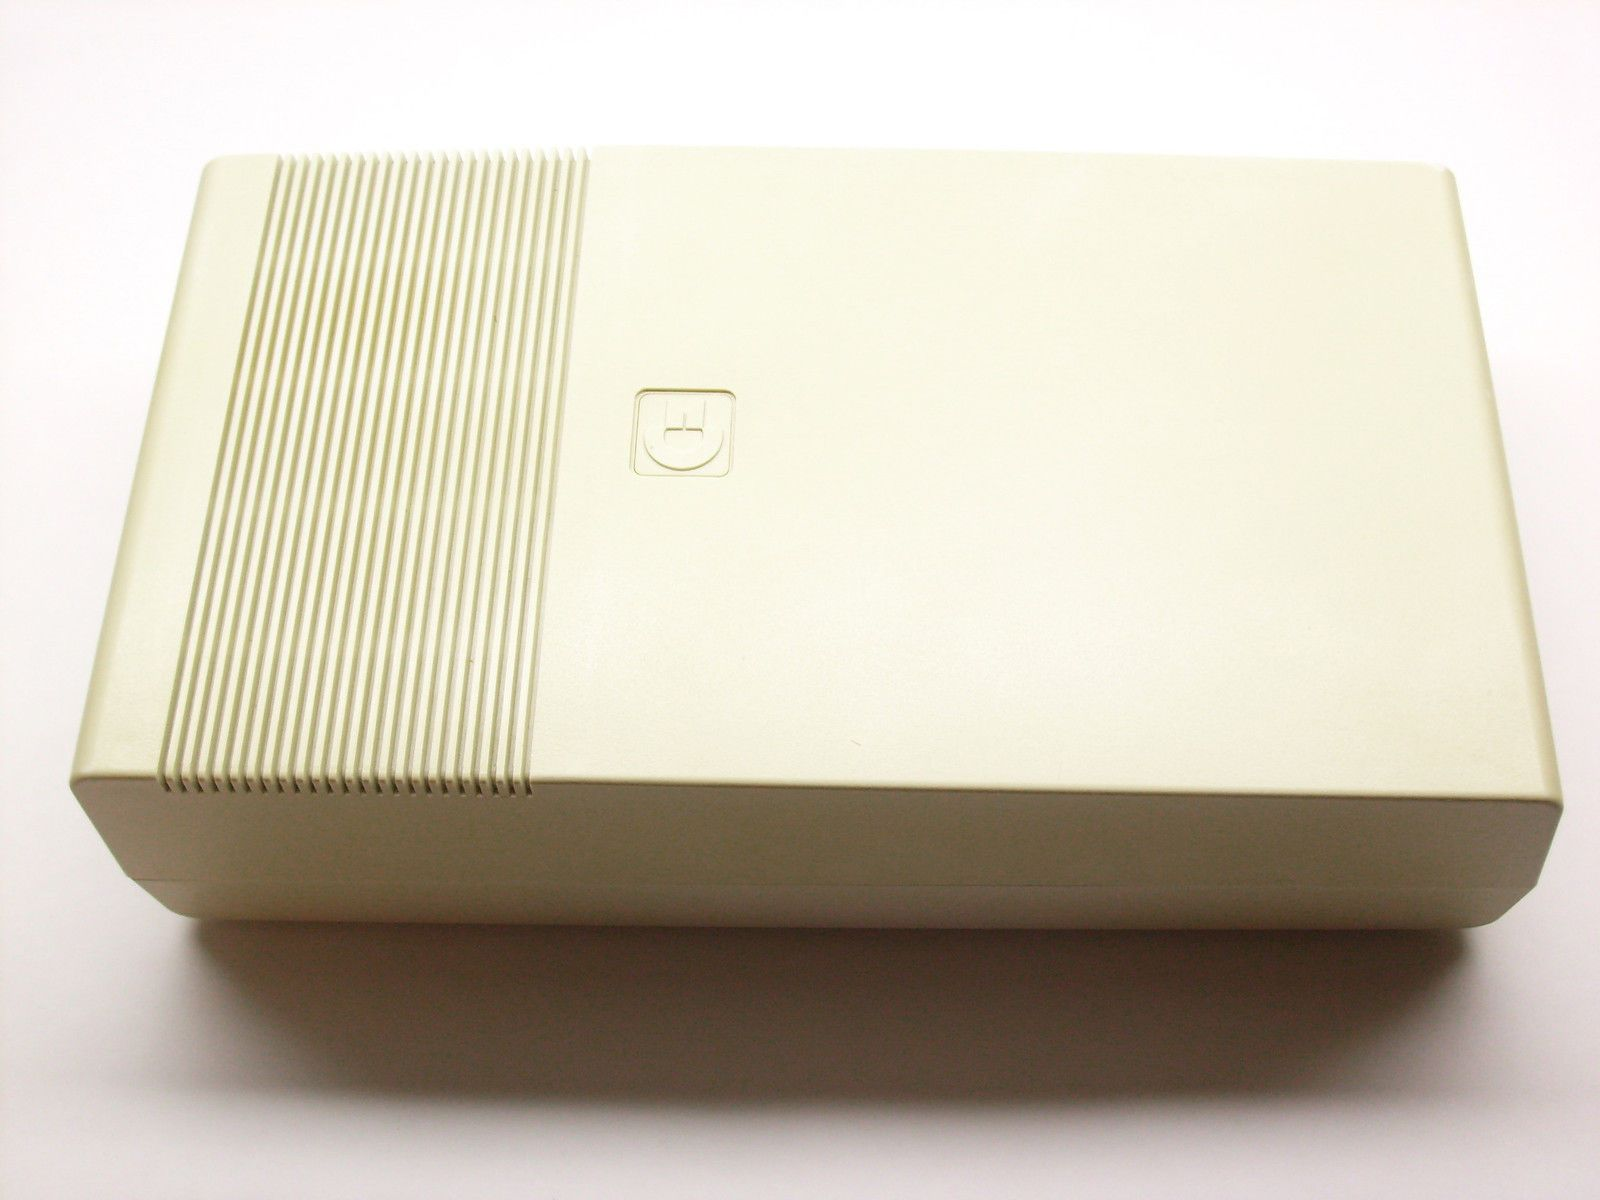 COMMODORE 2031 IEEE-488 FOR PET / CBM COMPUTERS